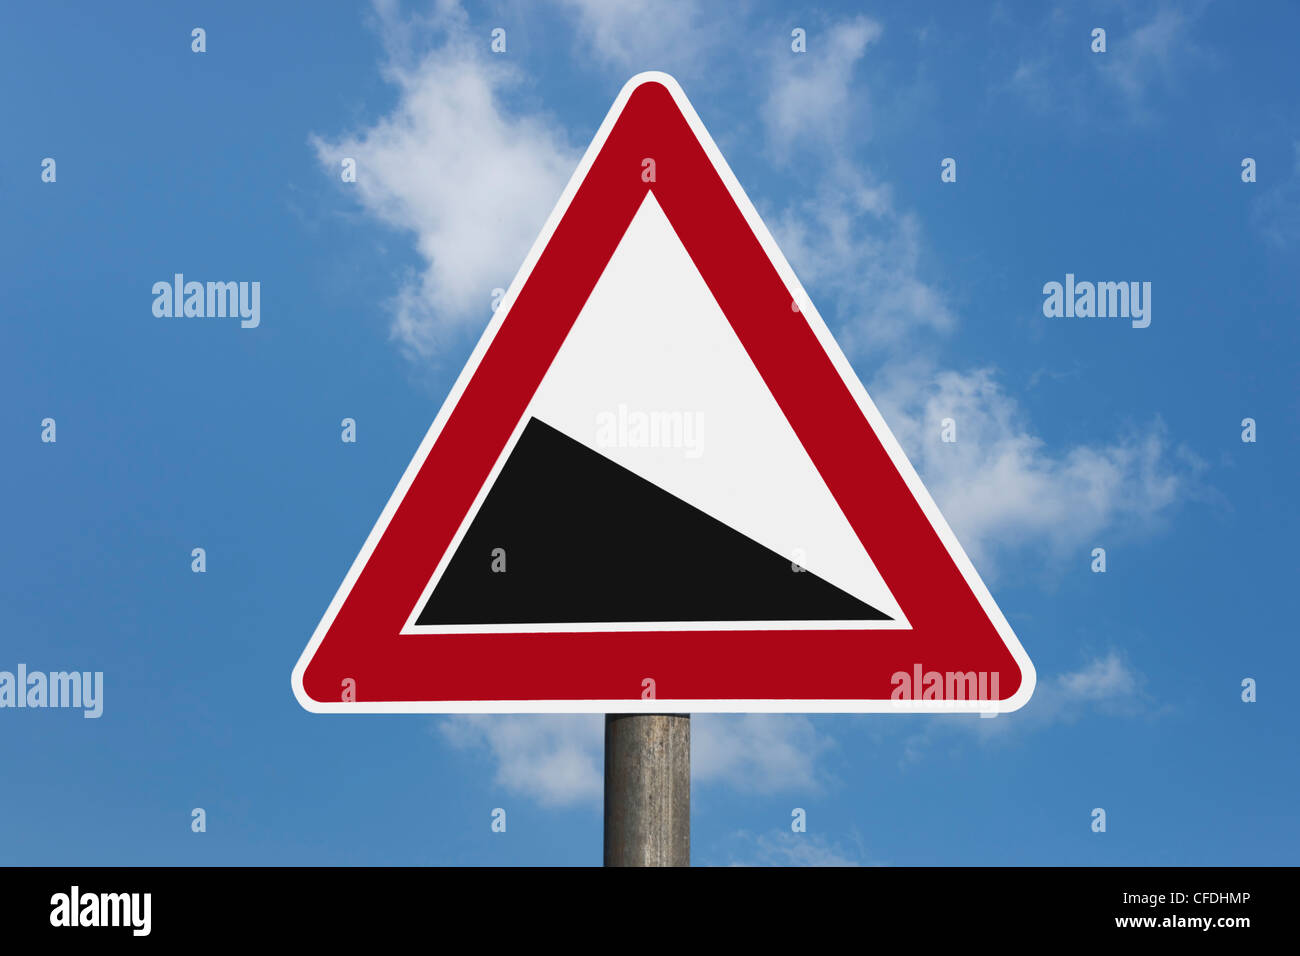 Detail photo of a danger sign 'Steep hill downwards' without inscription, background sky. - Stock Image